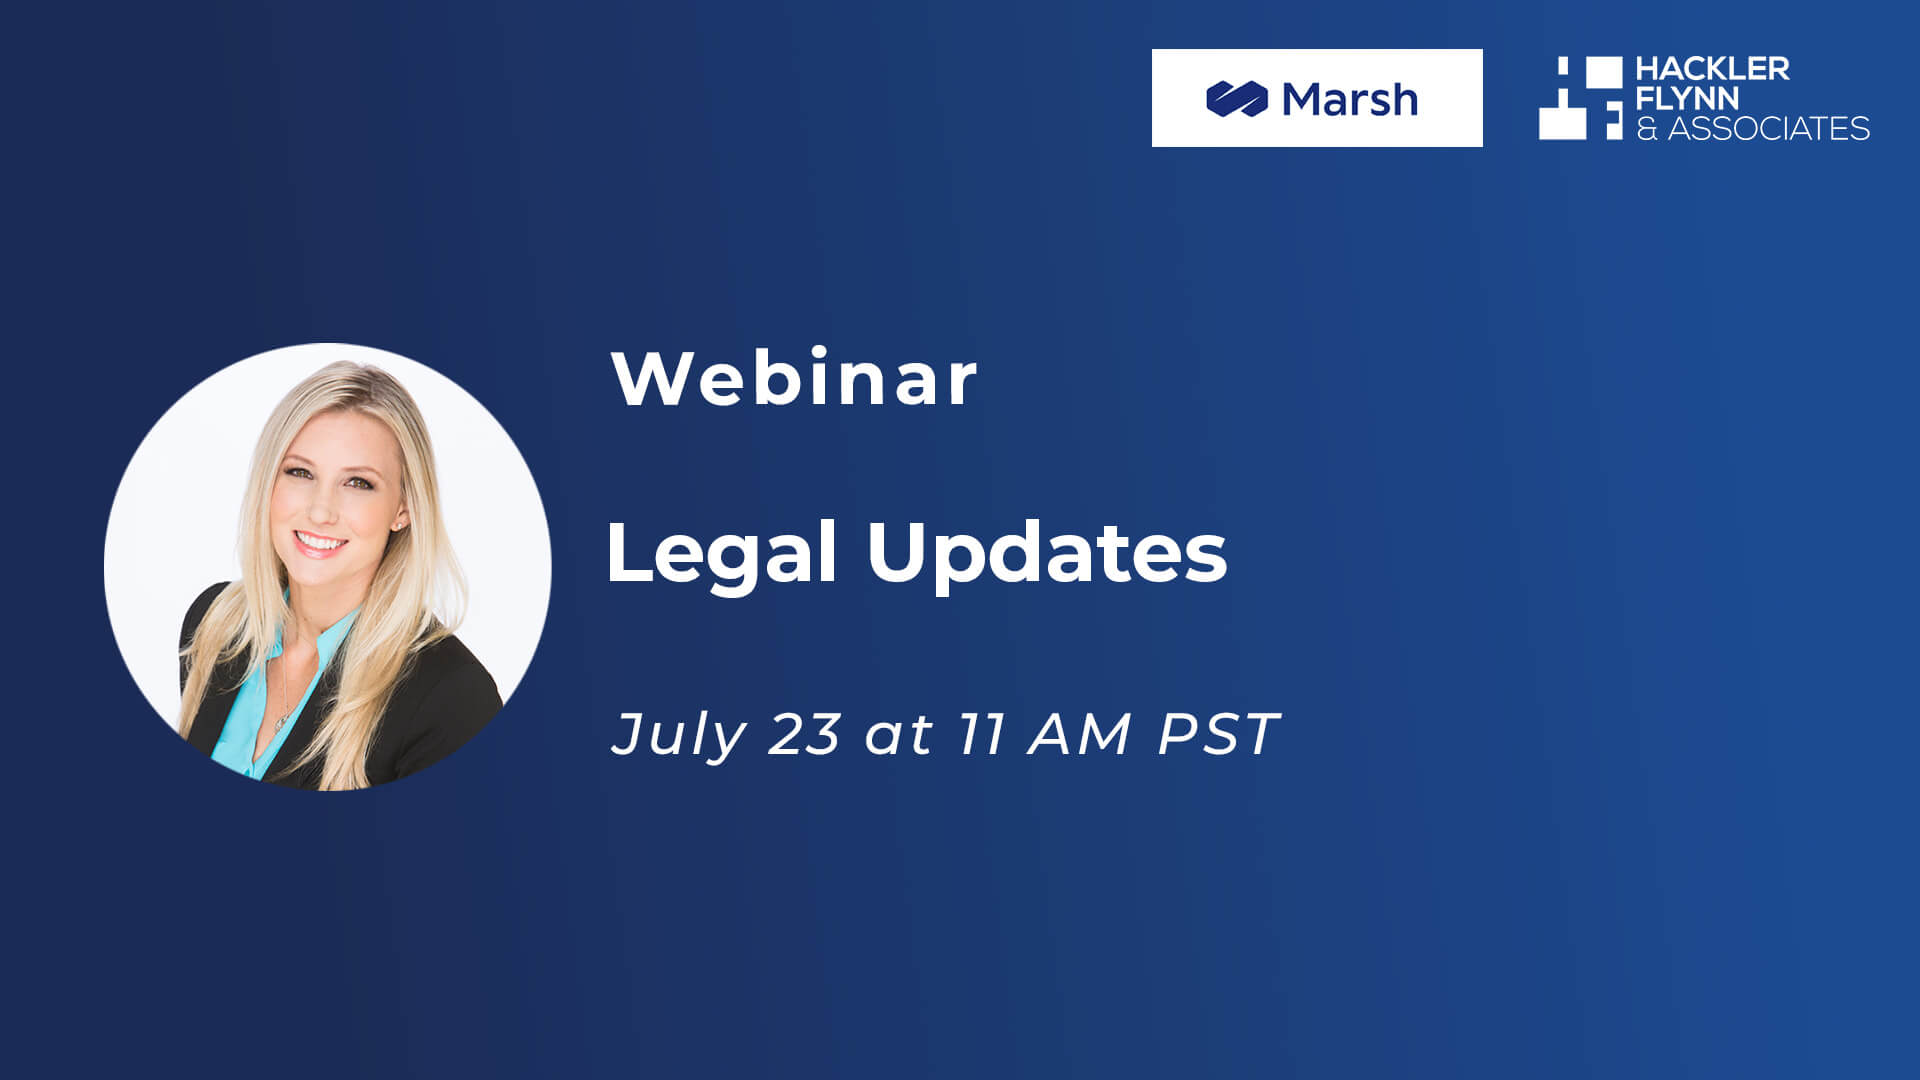 Webinar Graphic for Legal Updates with Marsh Insurance